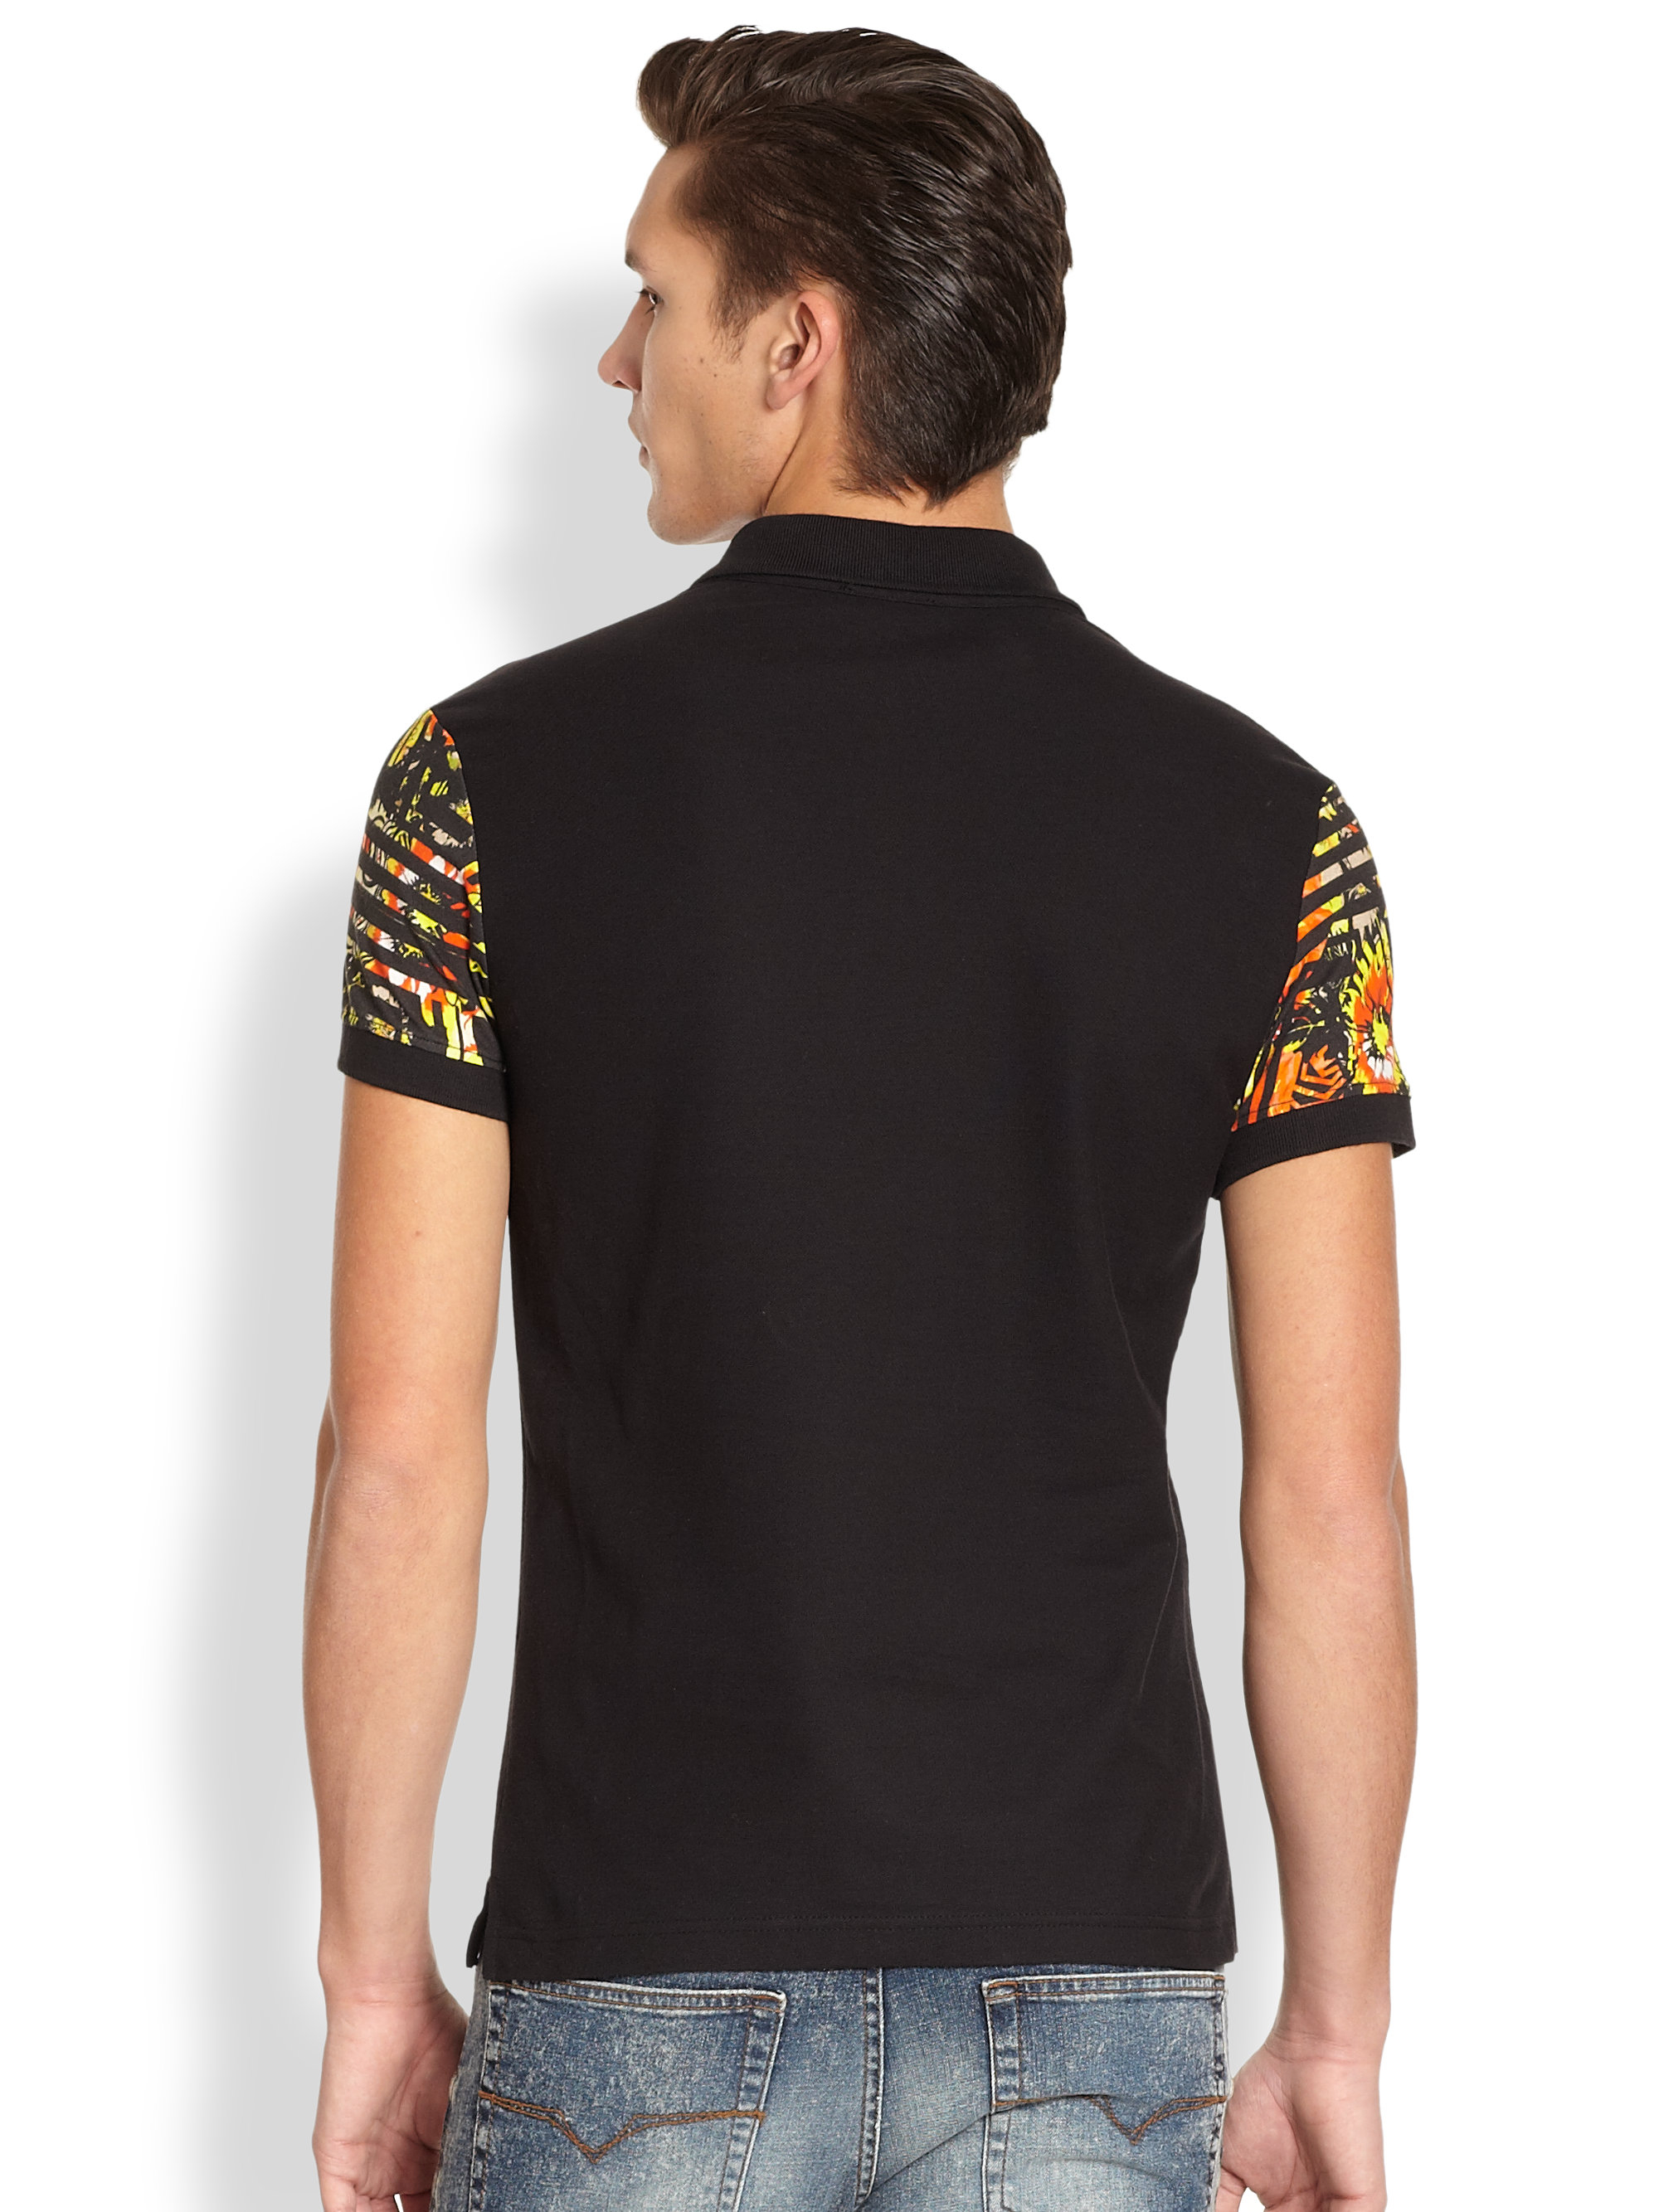 Versace Jeans Floral Sleeve Polo Shirt In Black For Men Lyst